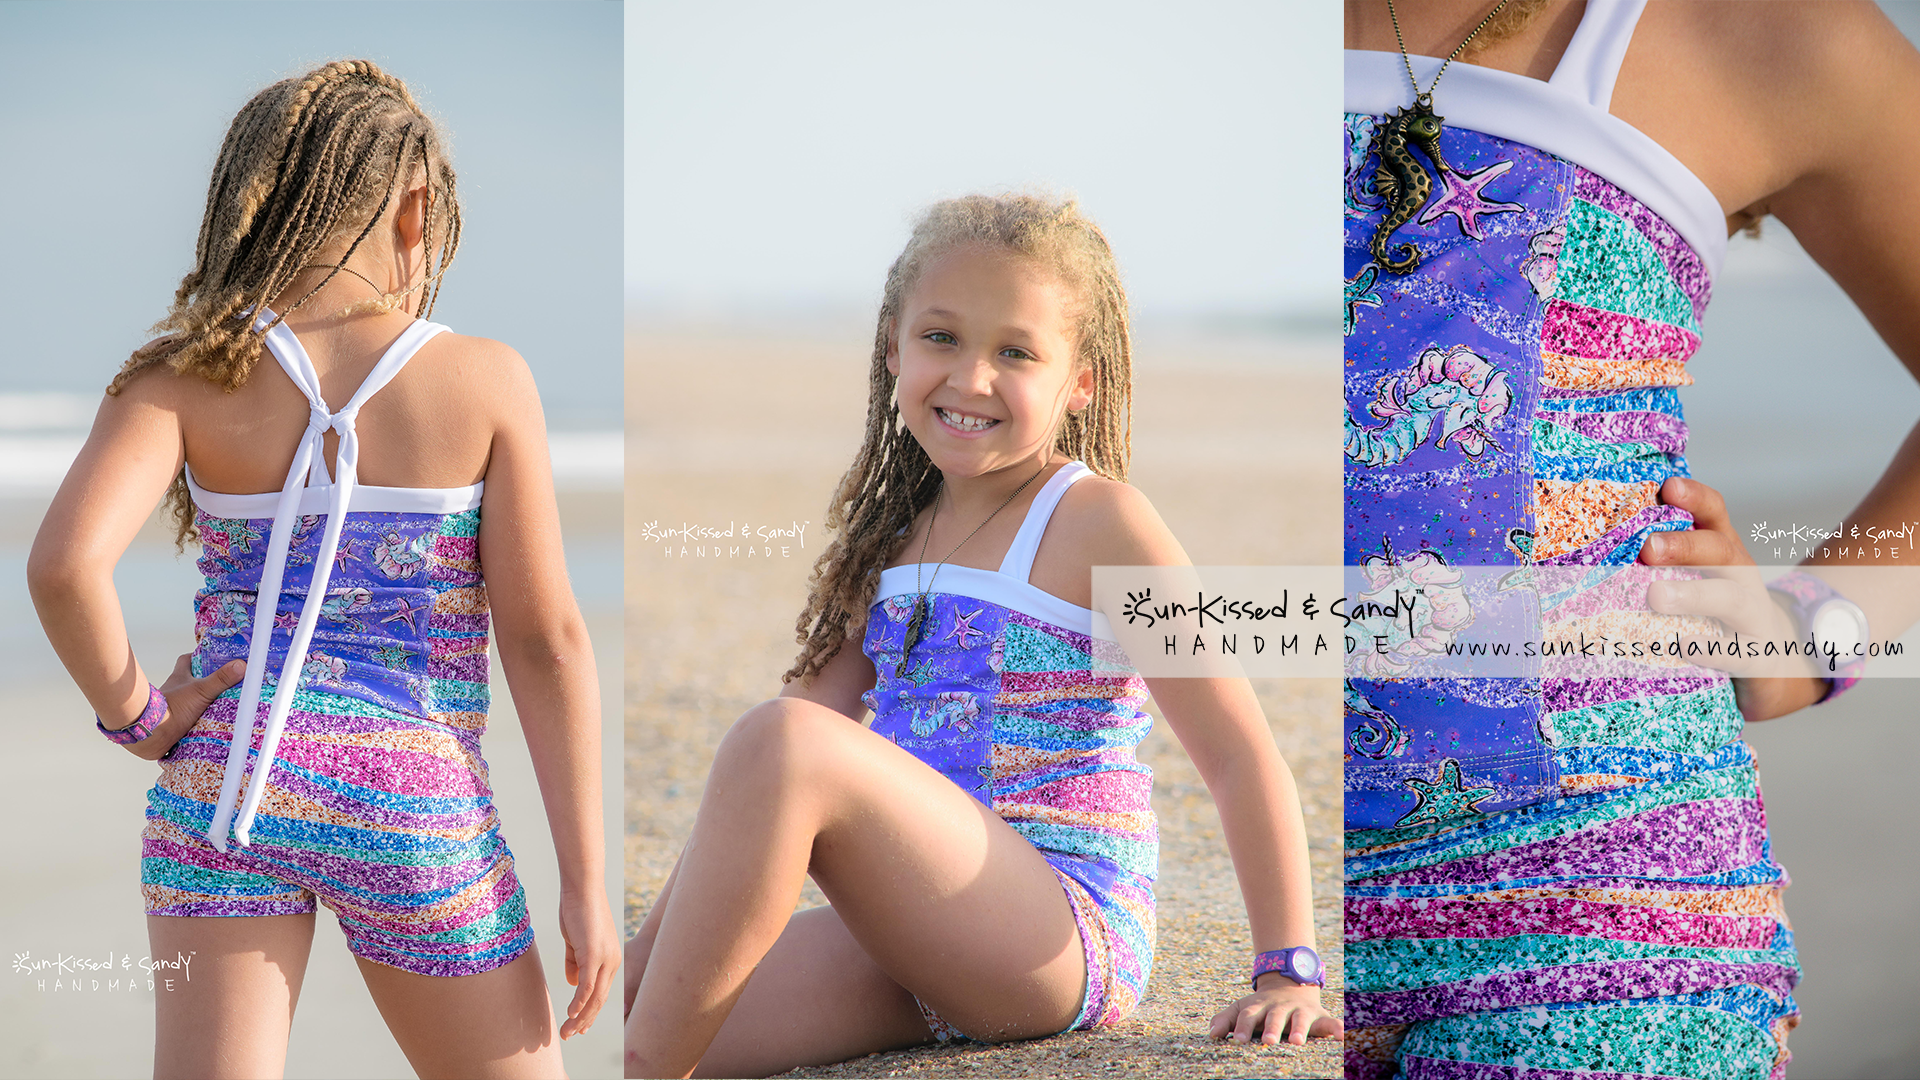 Sun-kissed and sandy handmade tankini swimsuit and rash-guard.